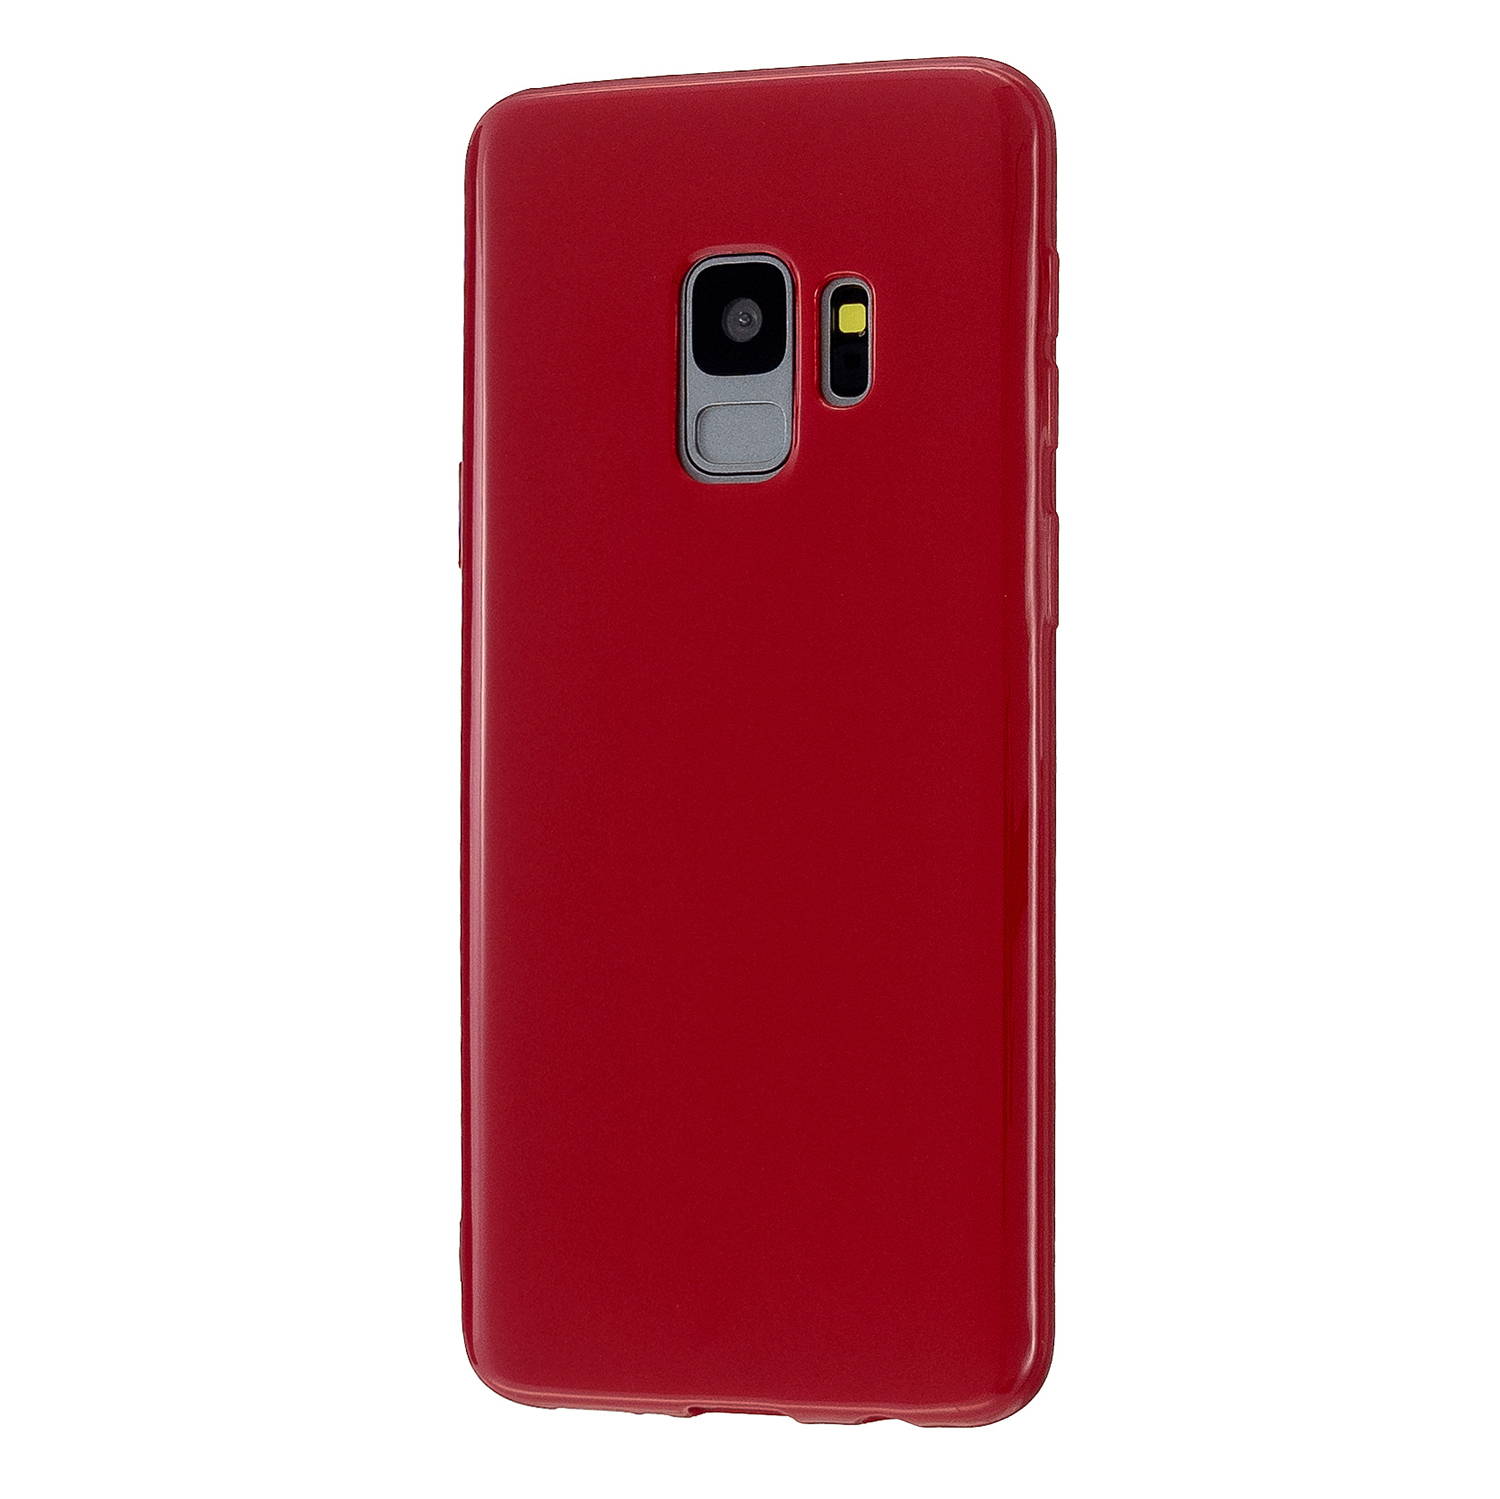 For Samsung S9/S9 Plus Mobile Phone Cover Classic Plain Design Classic Smartphone Case Soft TPU Phone Shell Rose red